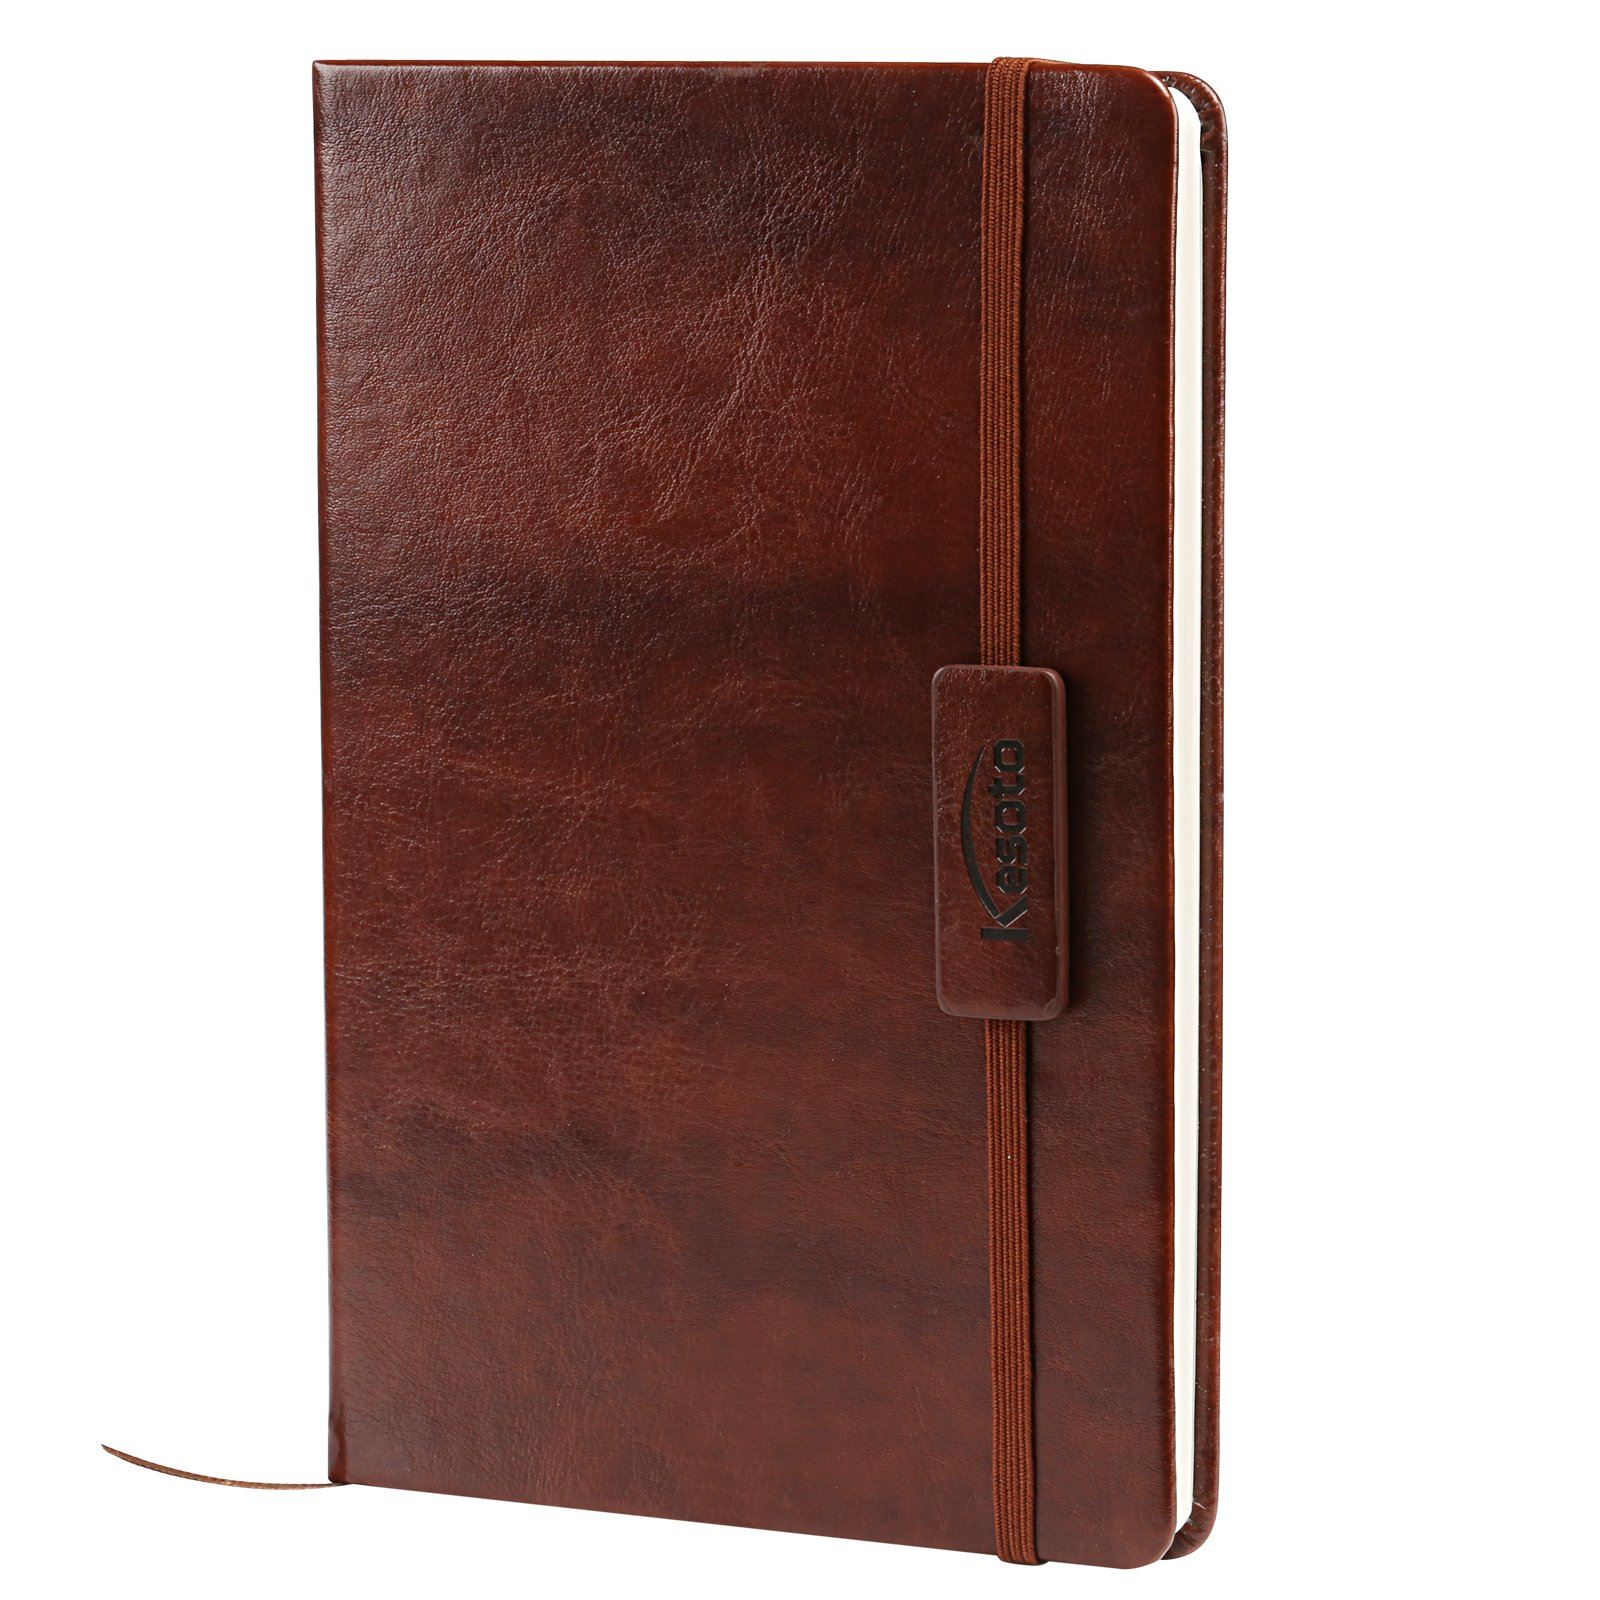 Kesoto A5 Classic Ruled Leather Hardcover Writing Notebook Journal Diary with Elastic Closure and Expandable Paper Pocket (200 Pages) by Kesoto (Image #1)